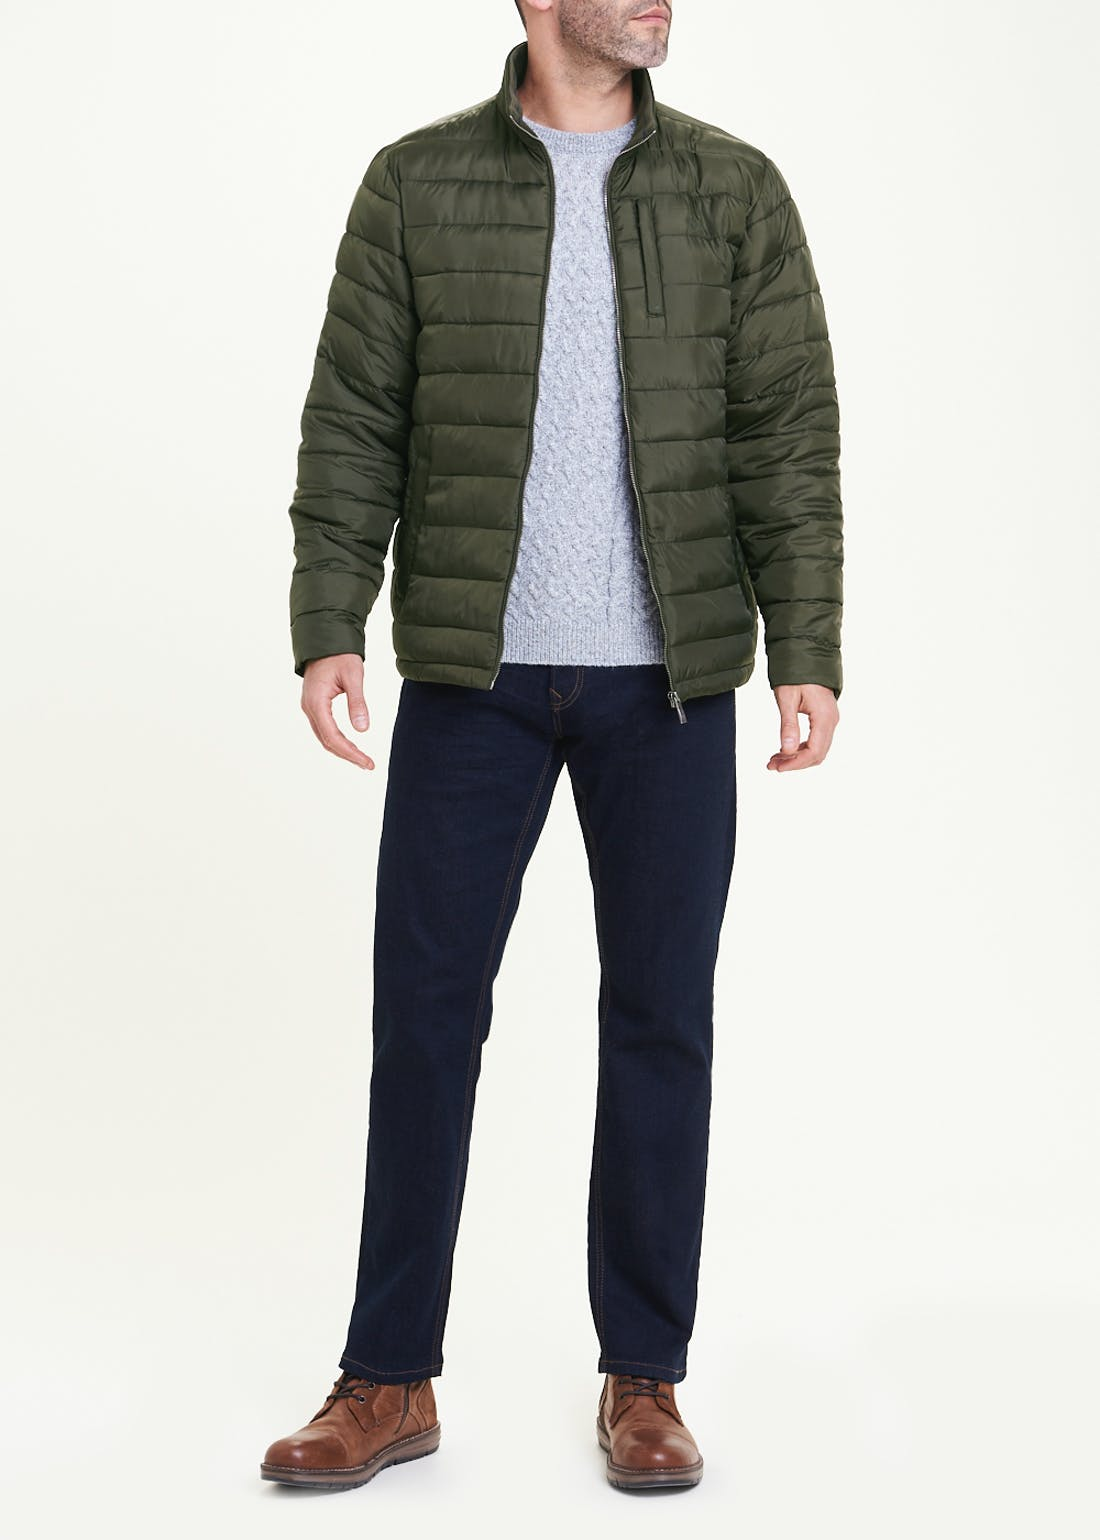 Lincoln Khaki Quilted Puffer Jacket